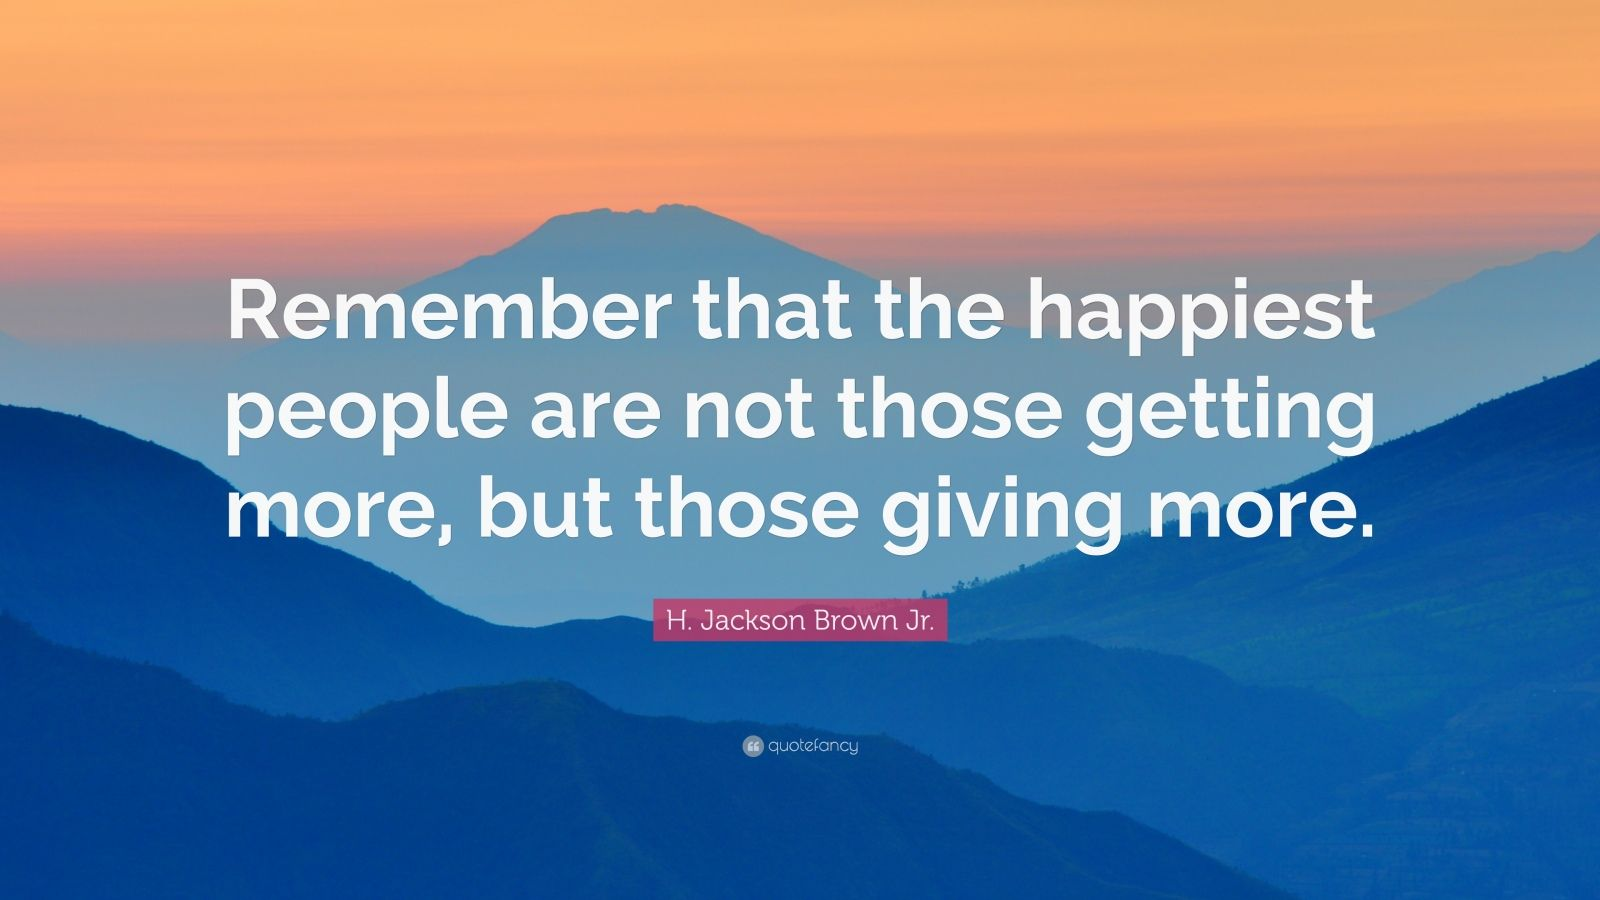 """H. Jackson Brown Jr. Quote: """"Remember that the happiest people are not those getting more, but those giving more."""""""